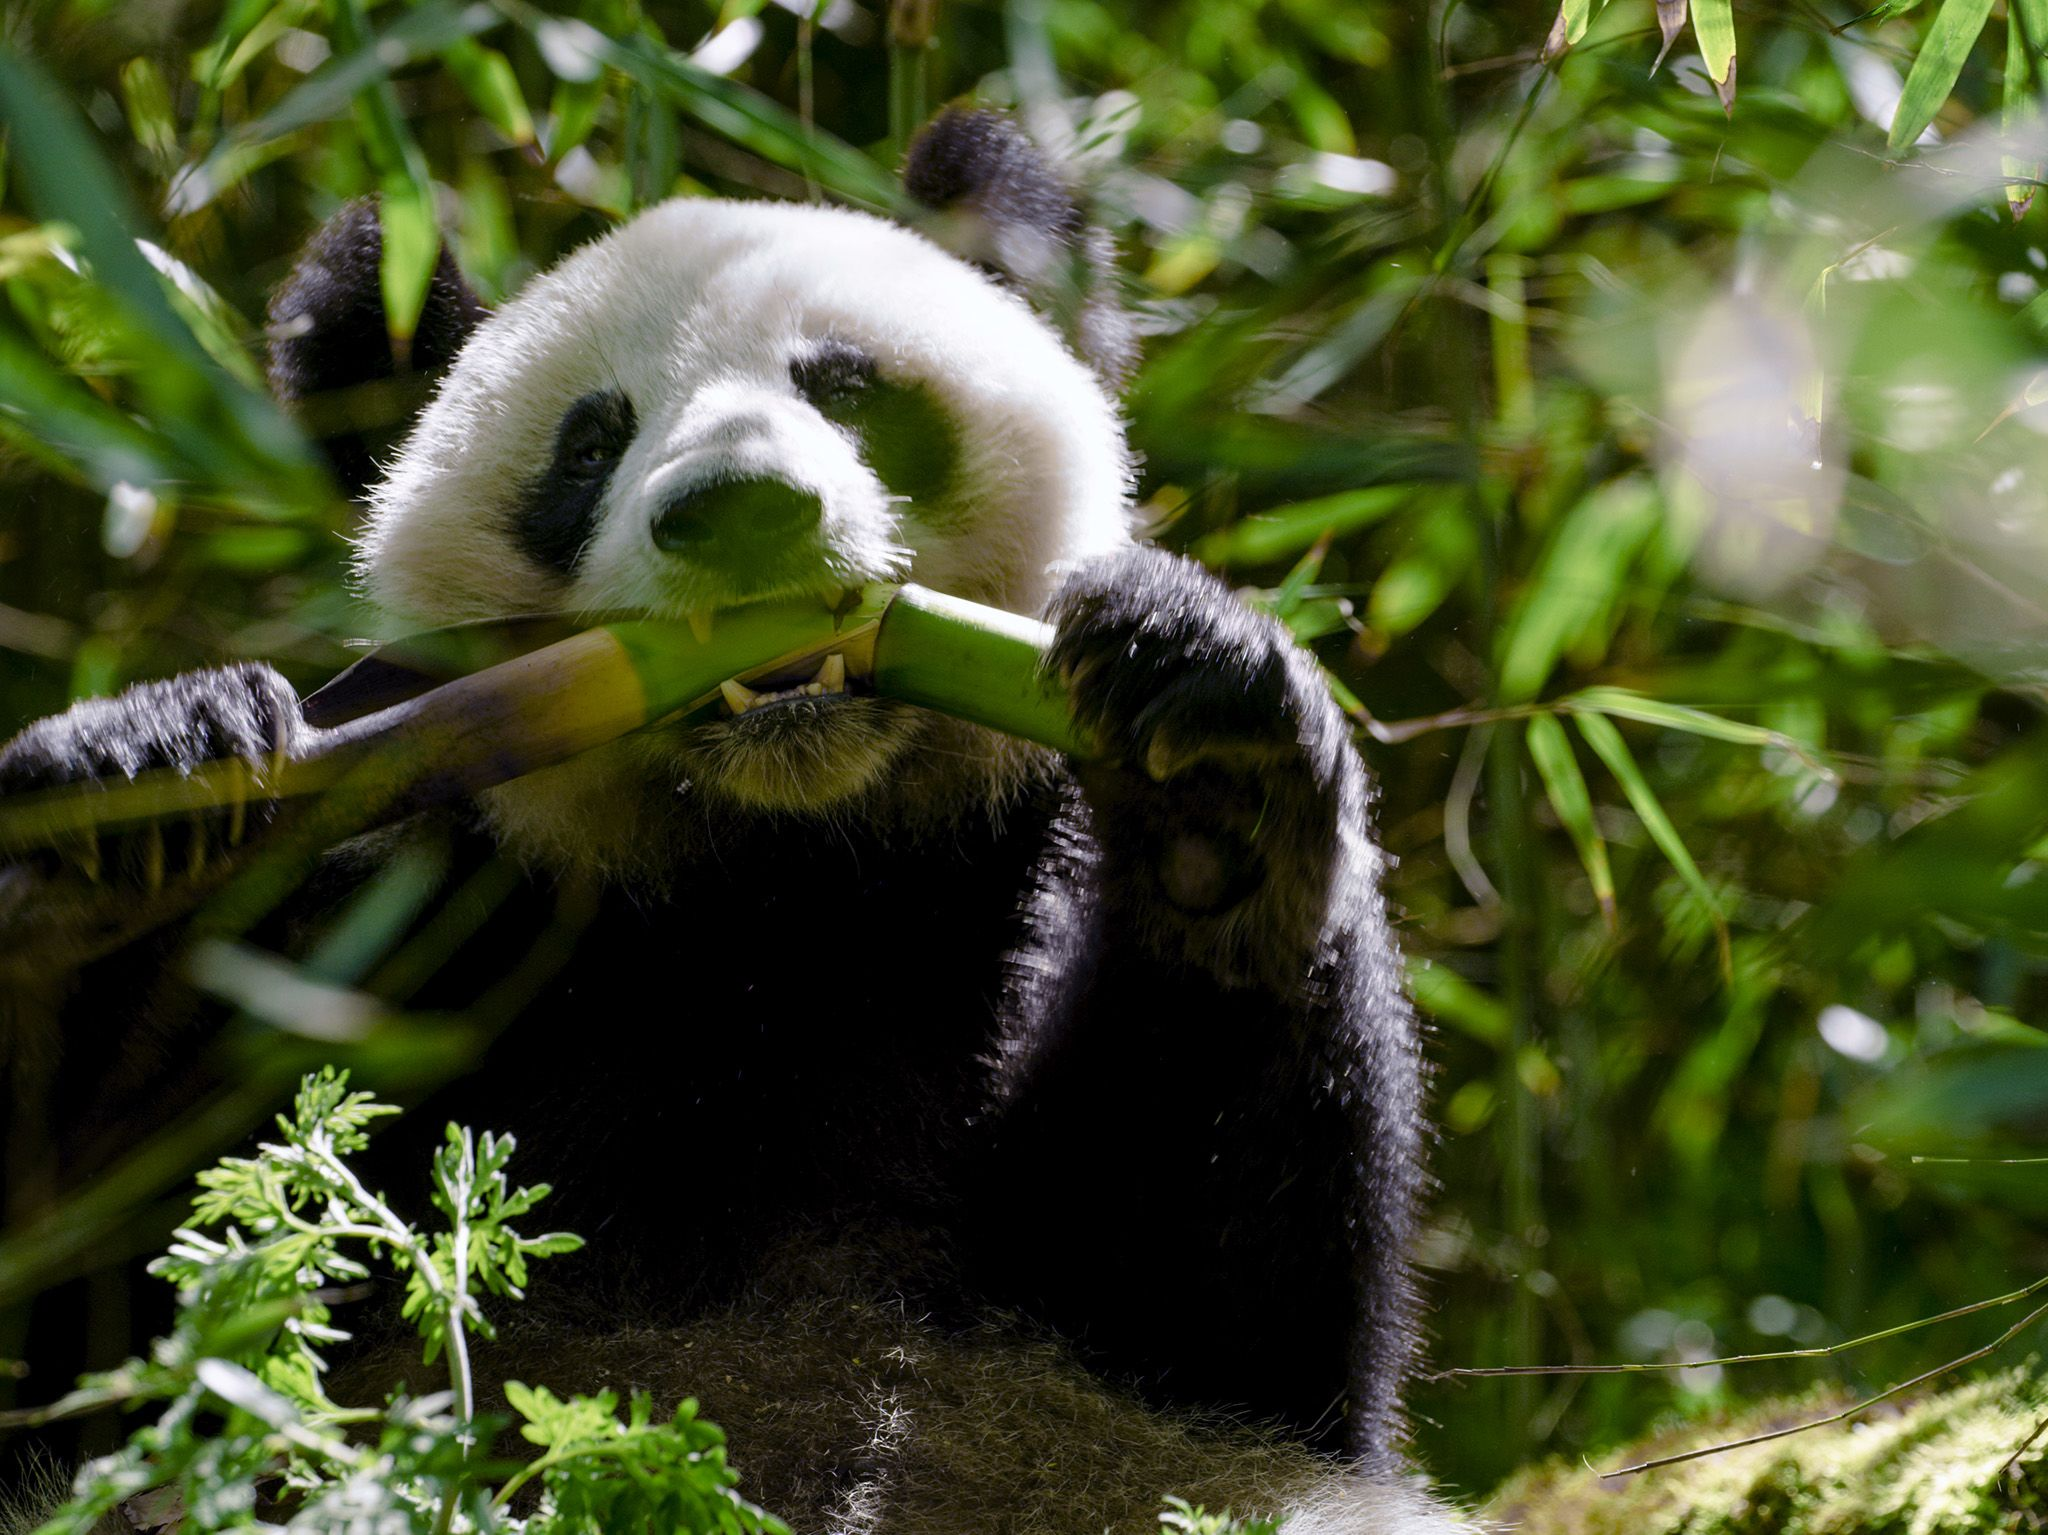 Wolong, Sichuan, China: Pandas playing in the bamboo forest. This image is from The Hidden... [Foto del giorno - October 2019]